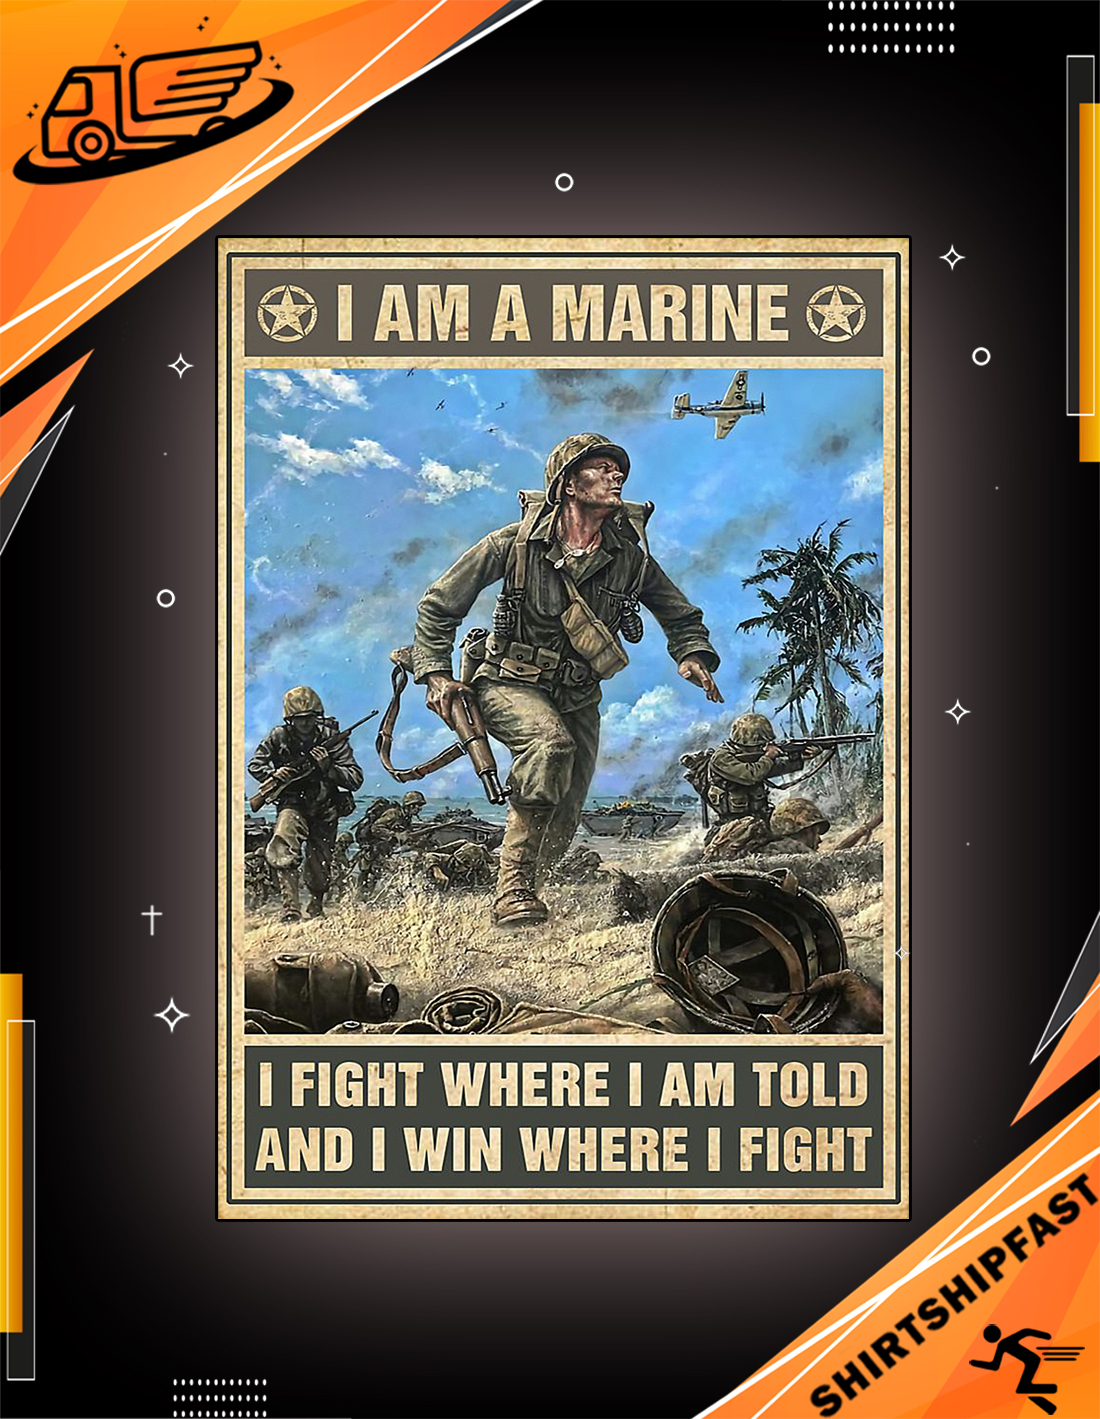 I am a marine I fight where I am told and I win where I fight poster - Picture 2